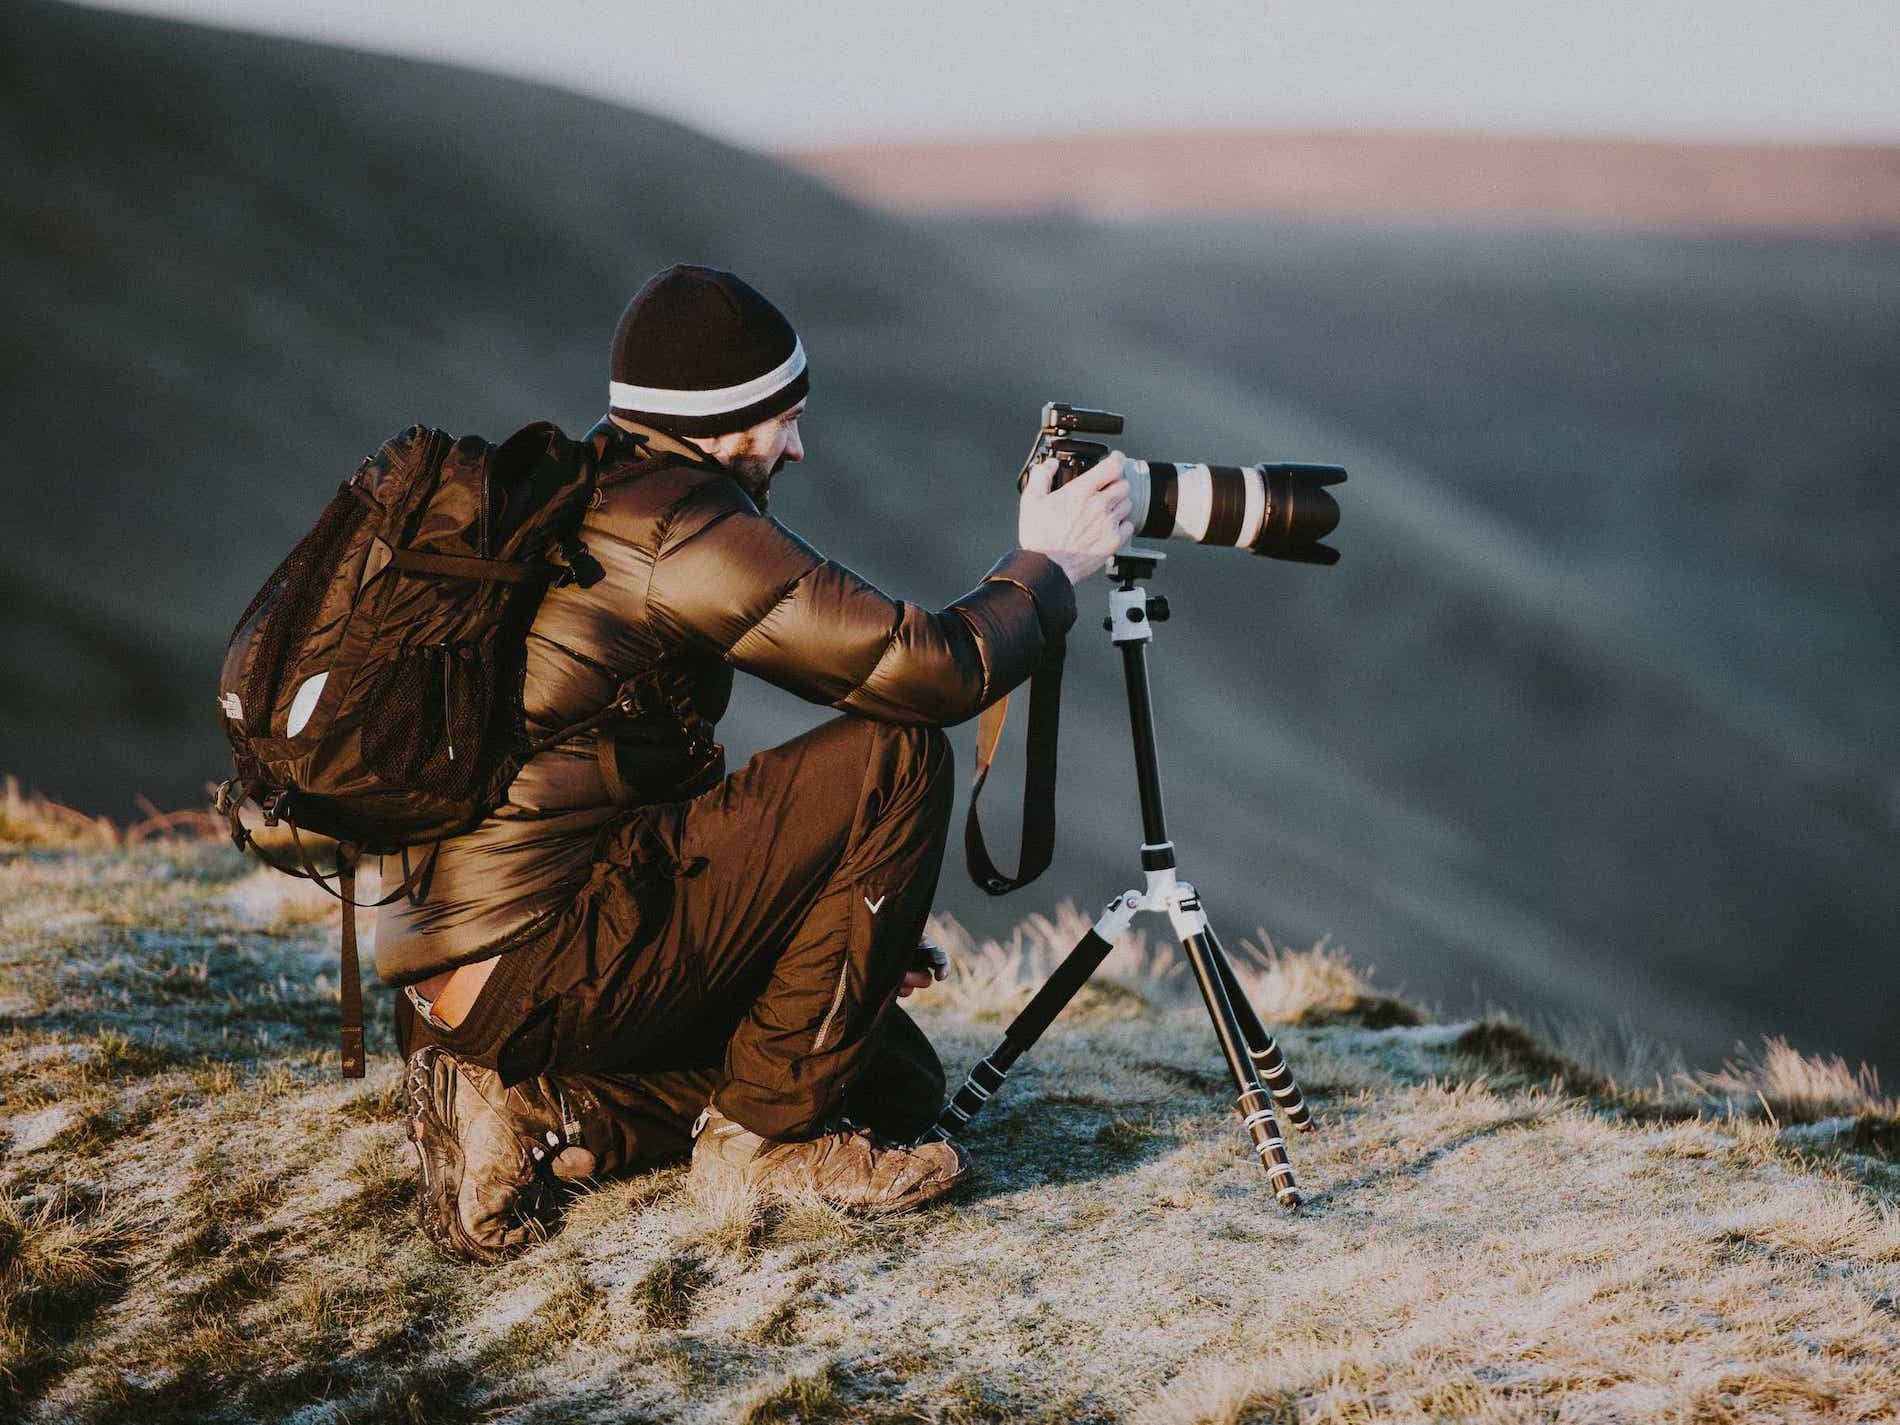 How to Start a Photography Workshop Business with No Experience